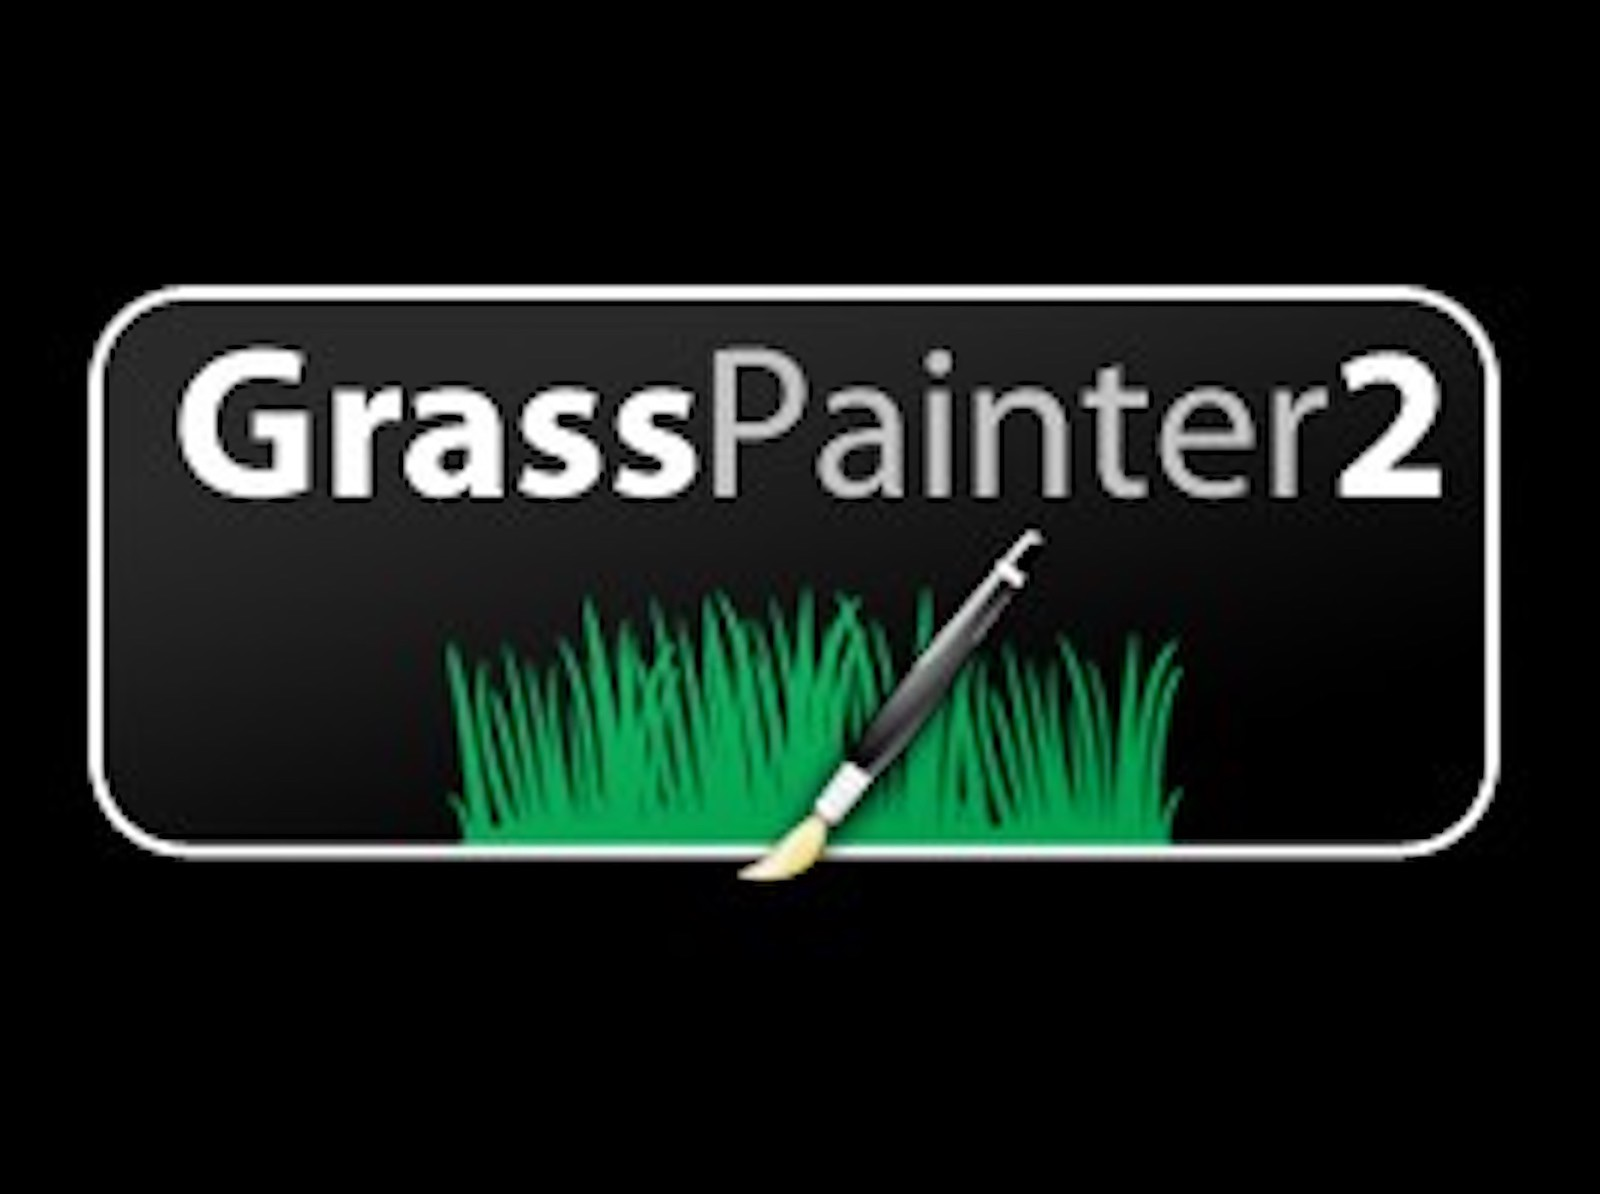 Grass Painter 2 plugin